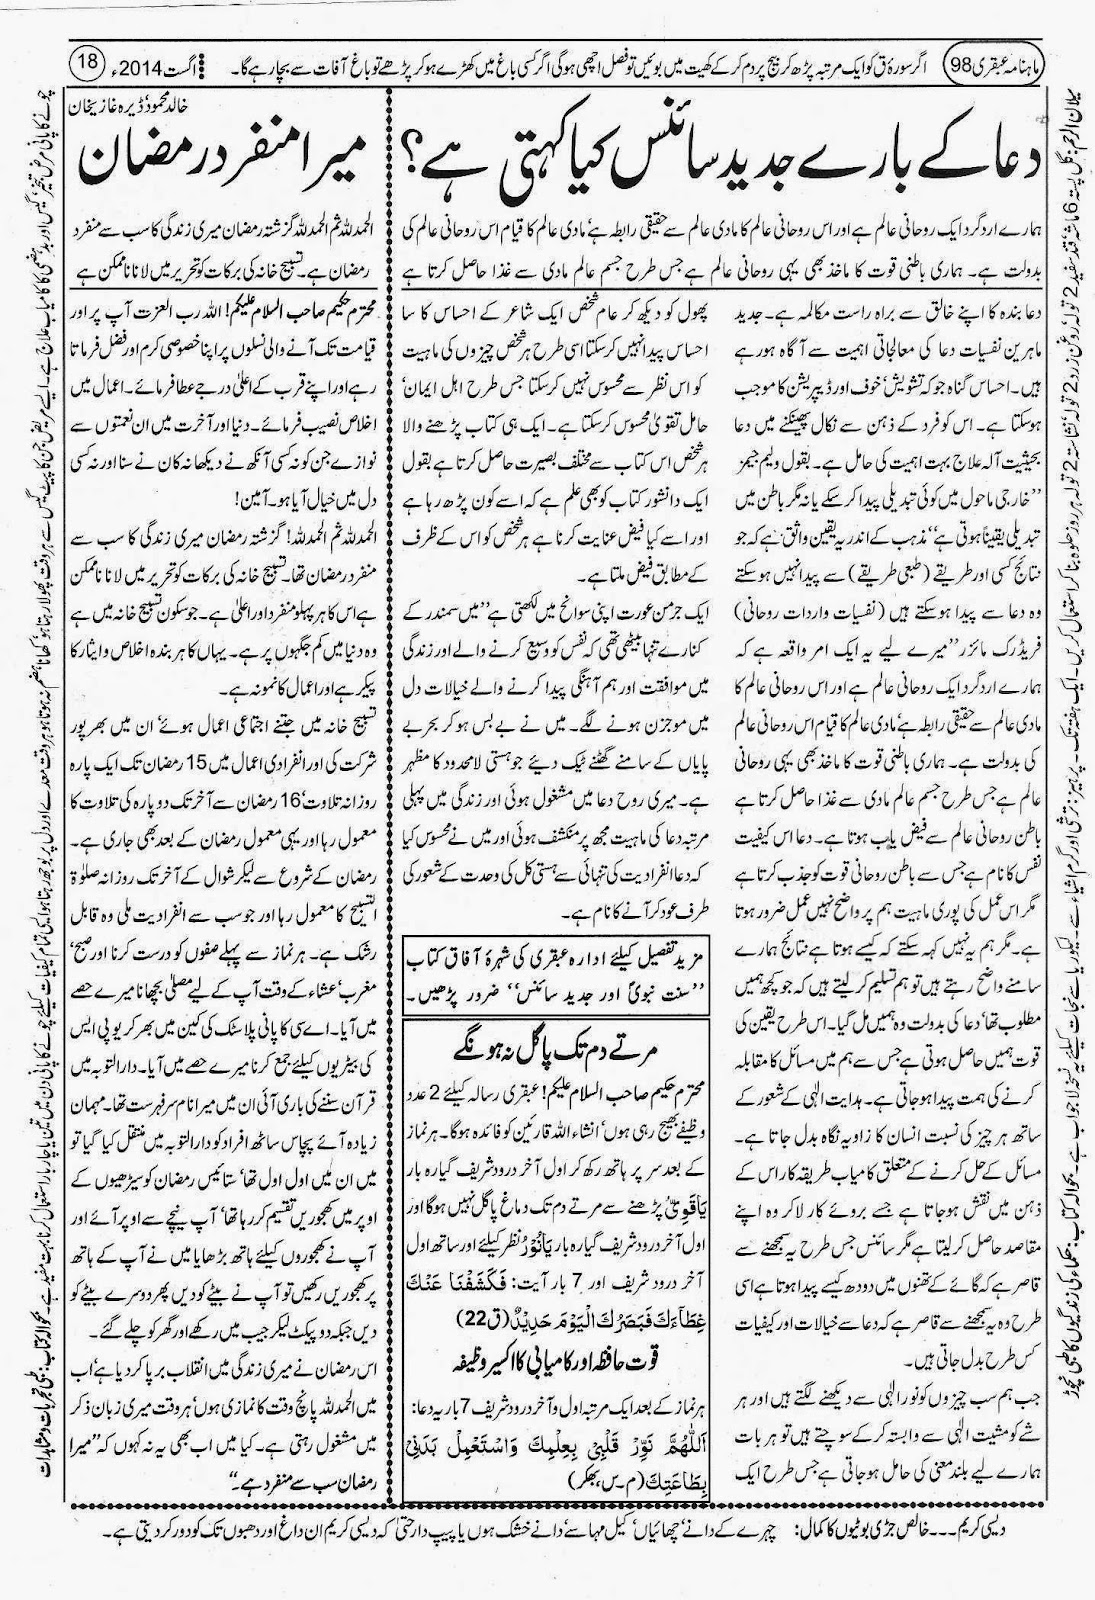 Ubqari August 2014 Page 18